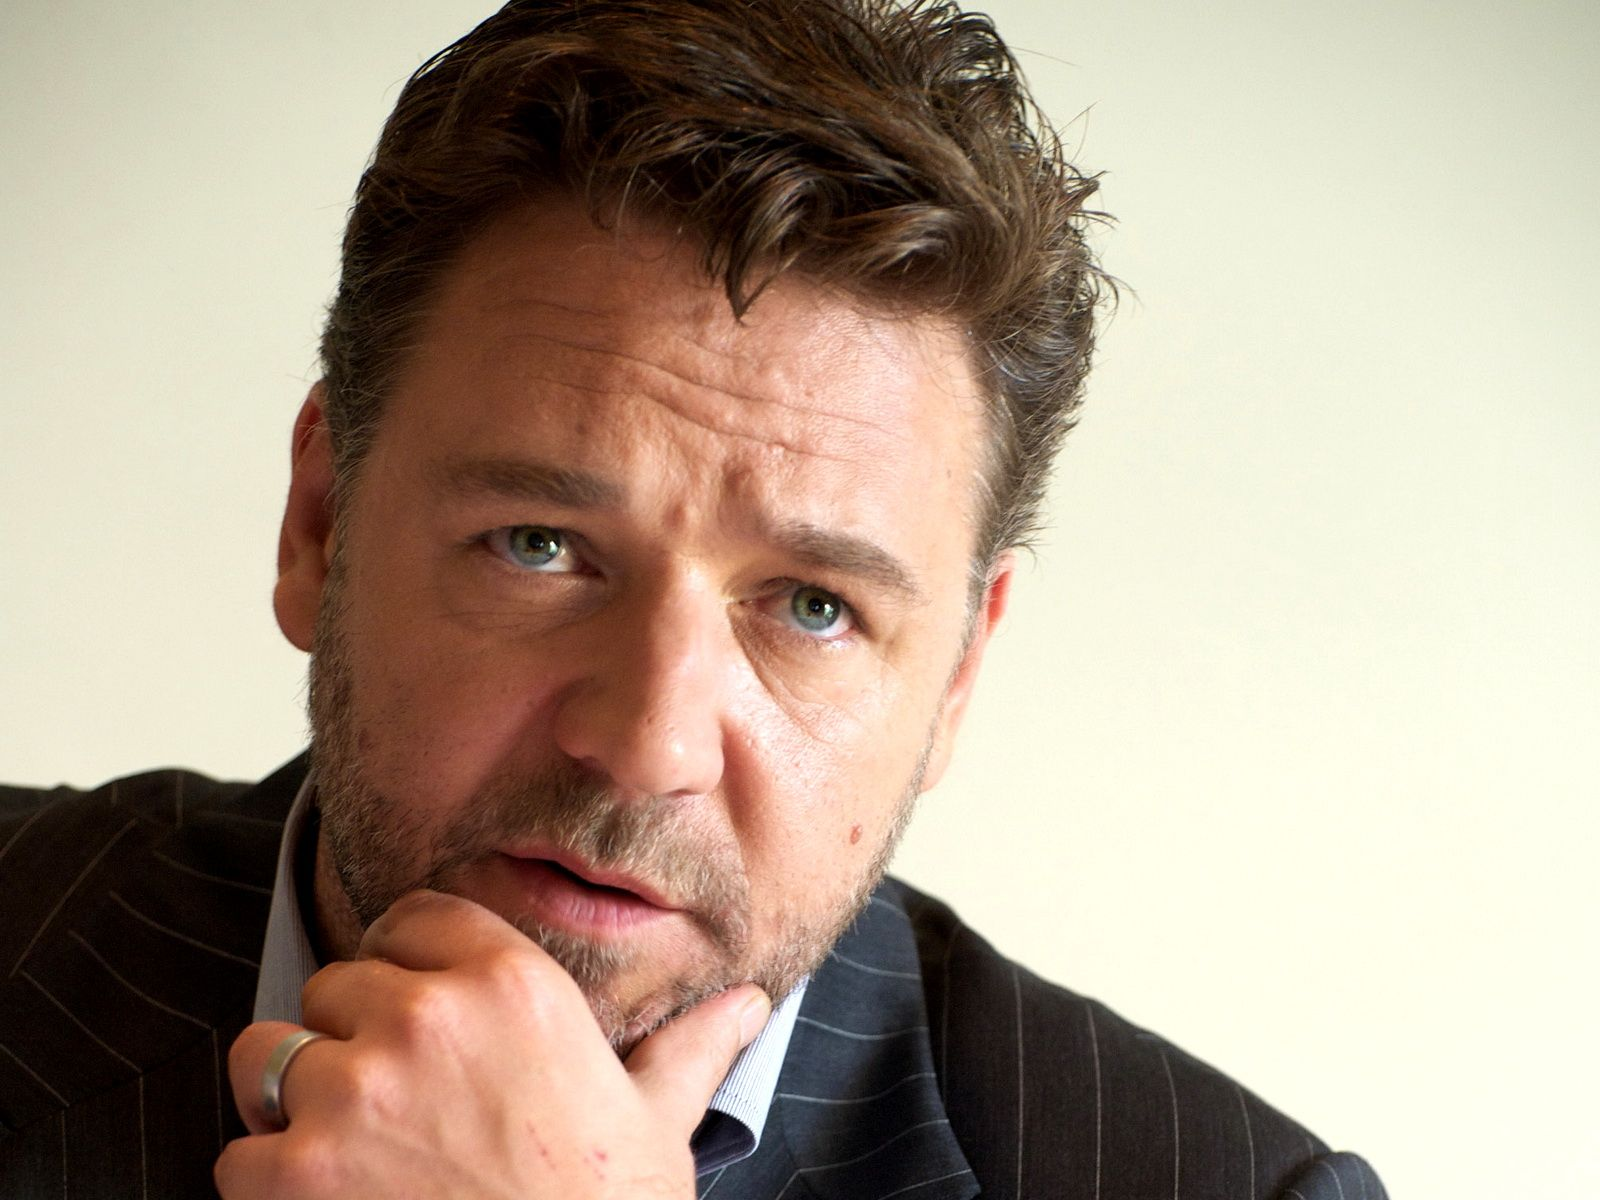 Russell Crowe Celebrity Wallpapers Pictures 52382 1600x1200 px